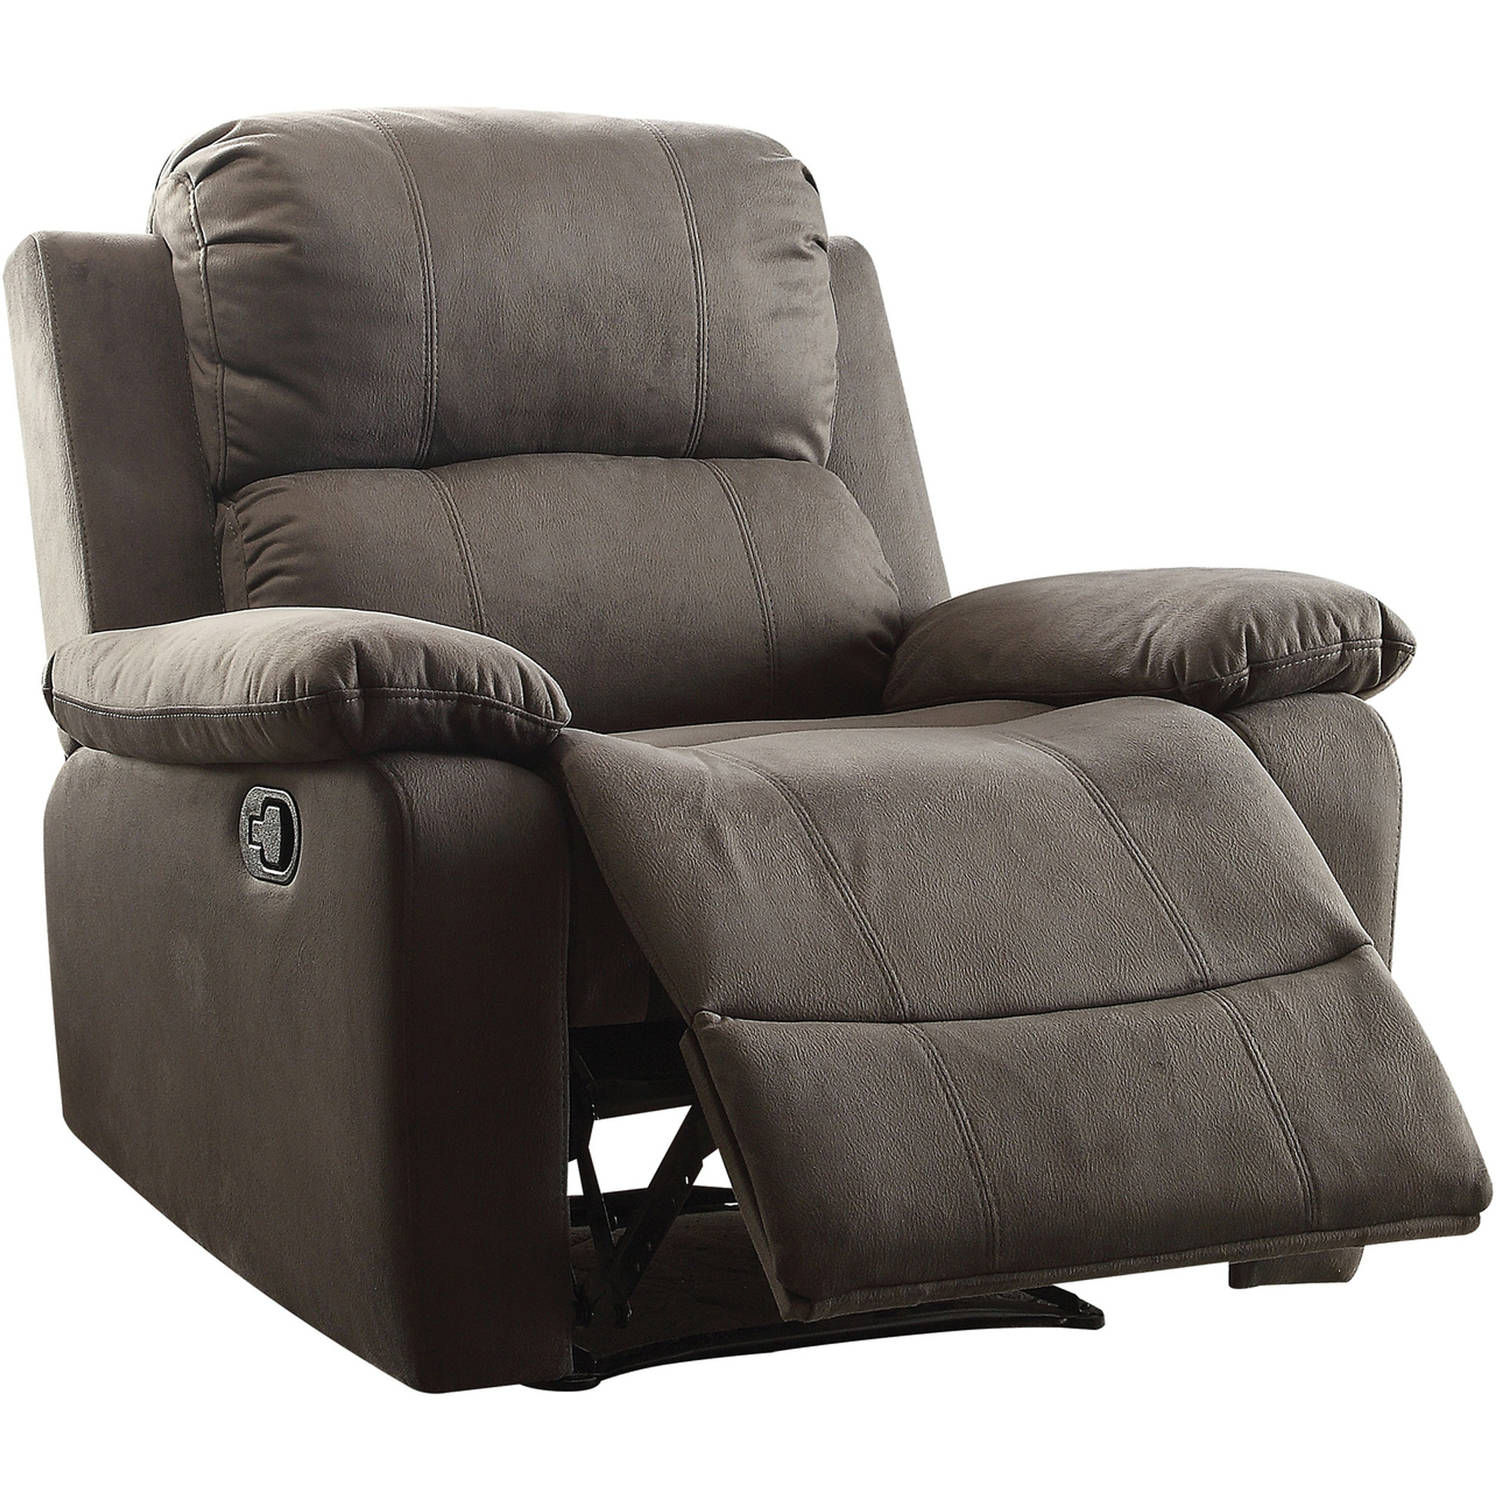 ACME Bina Recliner, Multiple Colors by Acme Furniture